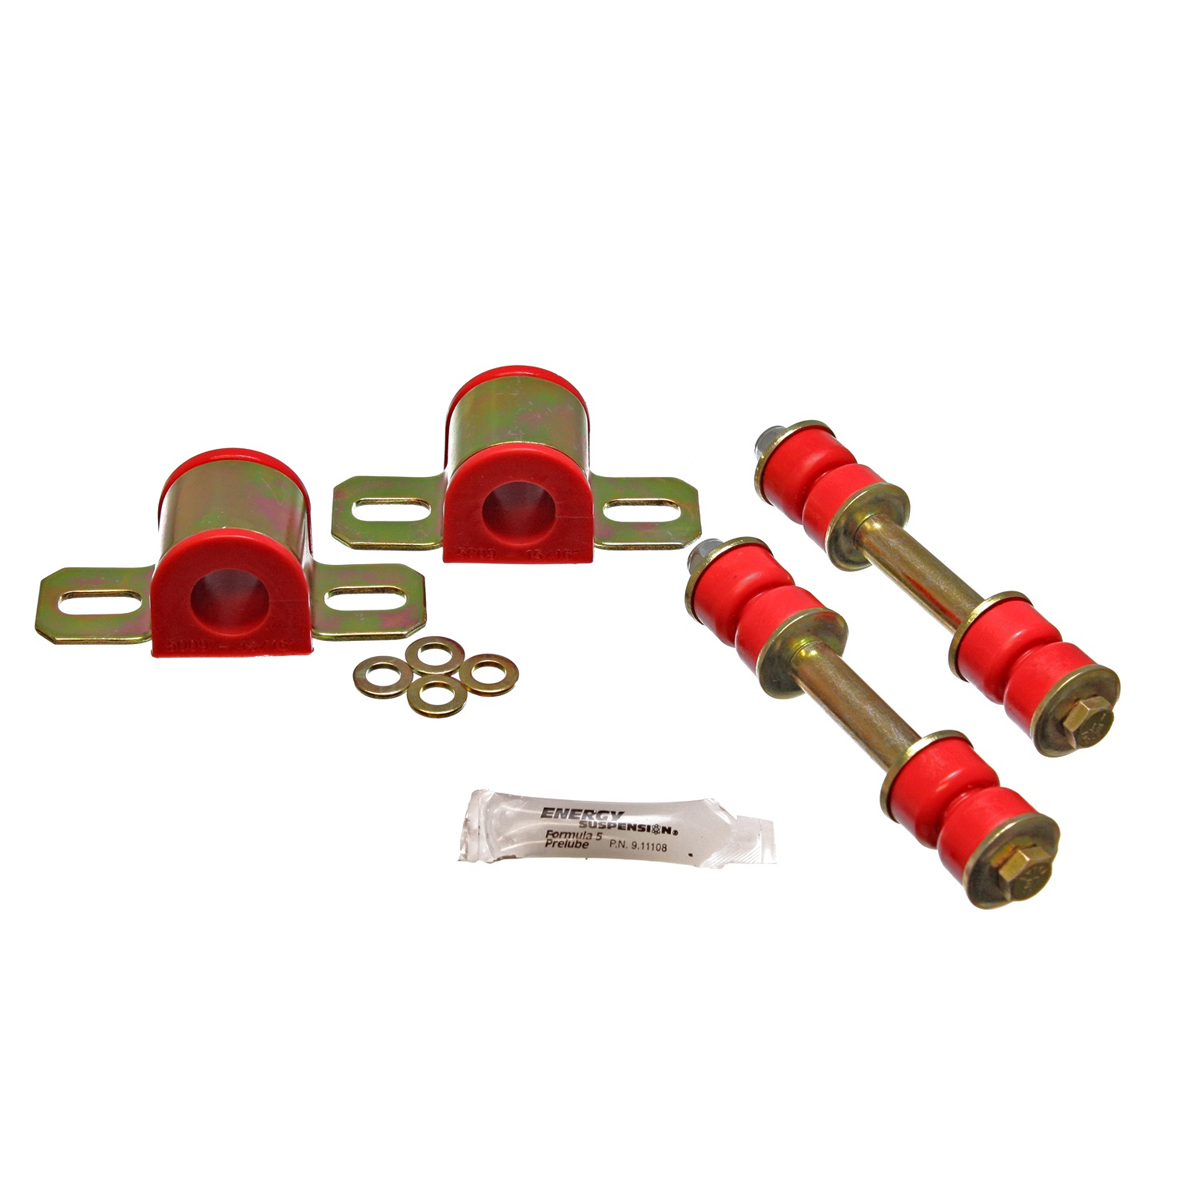 Energy Suspension Sway Bar Bushings Kit 19MM Sway Bar 3 5161R